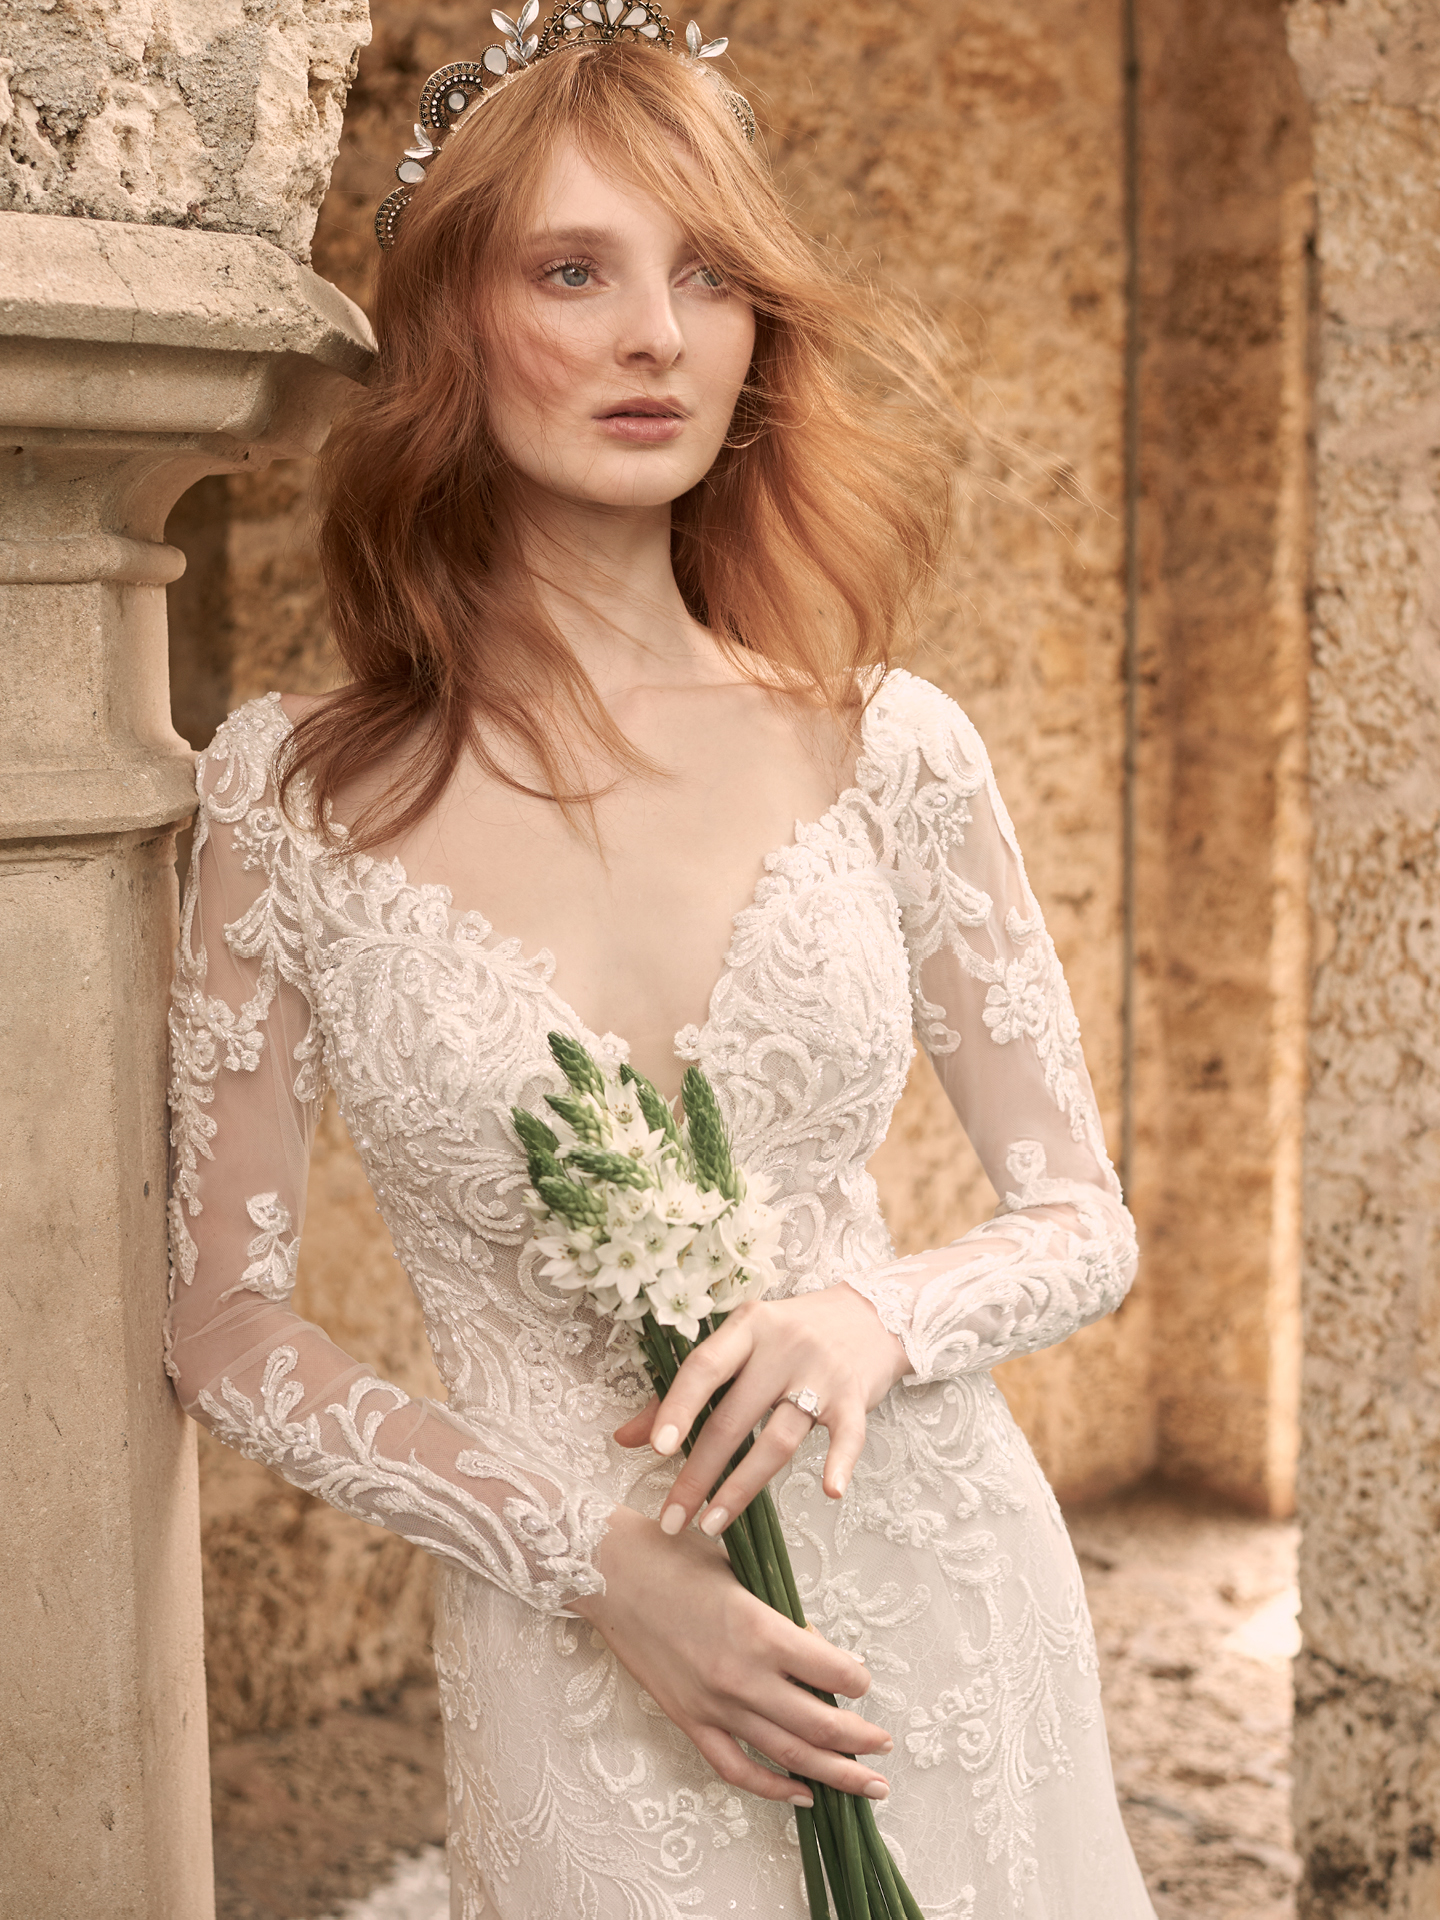 Model Holding Bouquet and Wearing Illusion Lace Sleeve Wedding Gown Called Johanna by Maggie Sottero